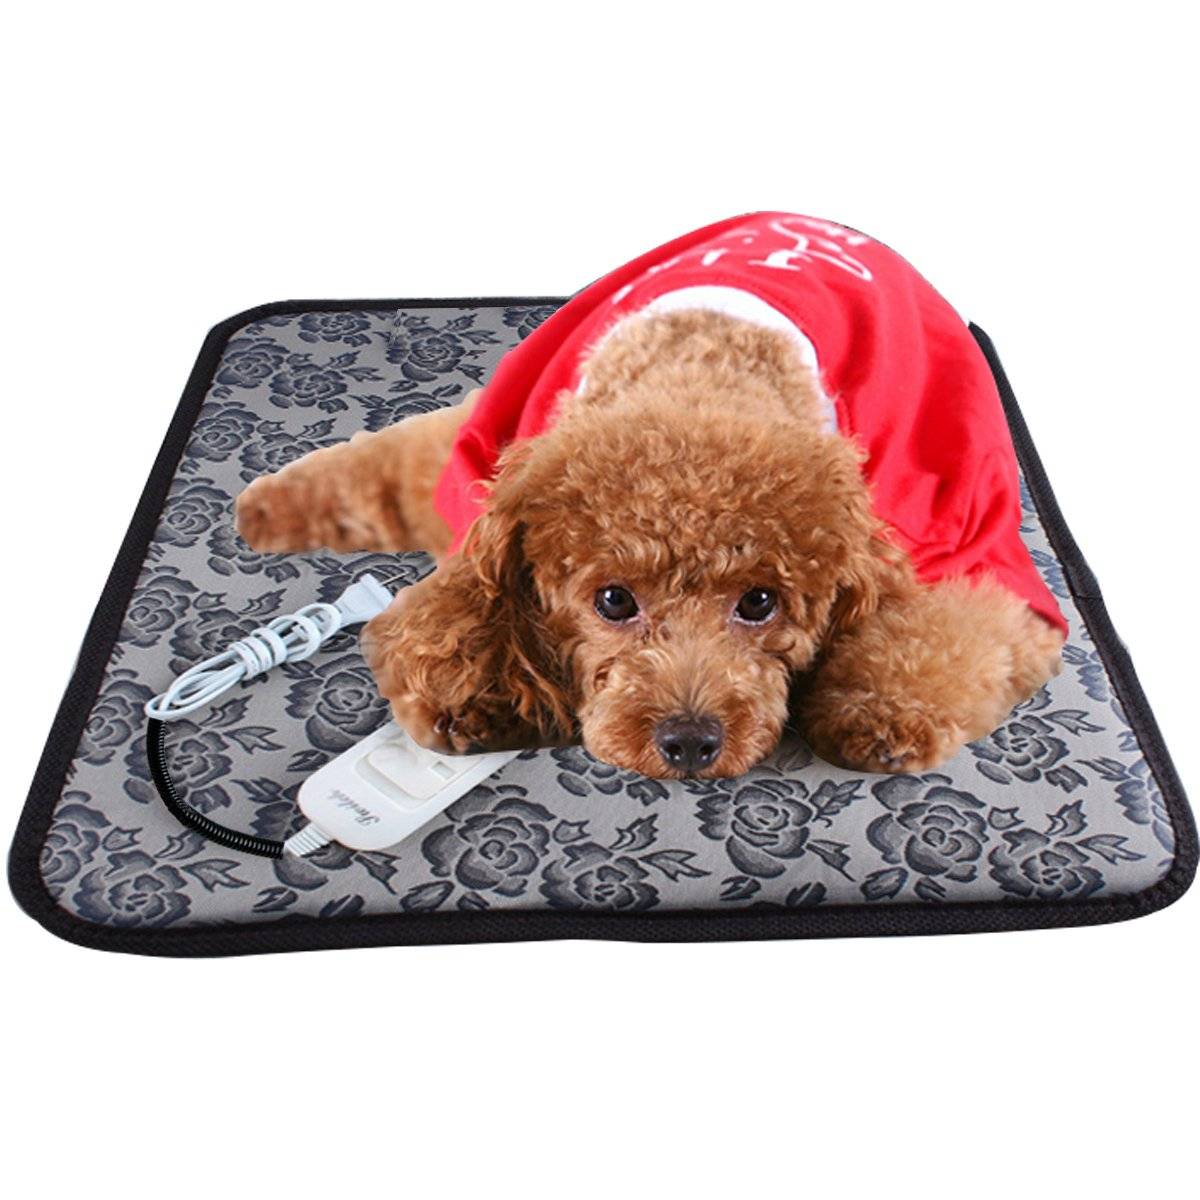 Aopet Dog Heating Pad Pet Electric Blanket Heater